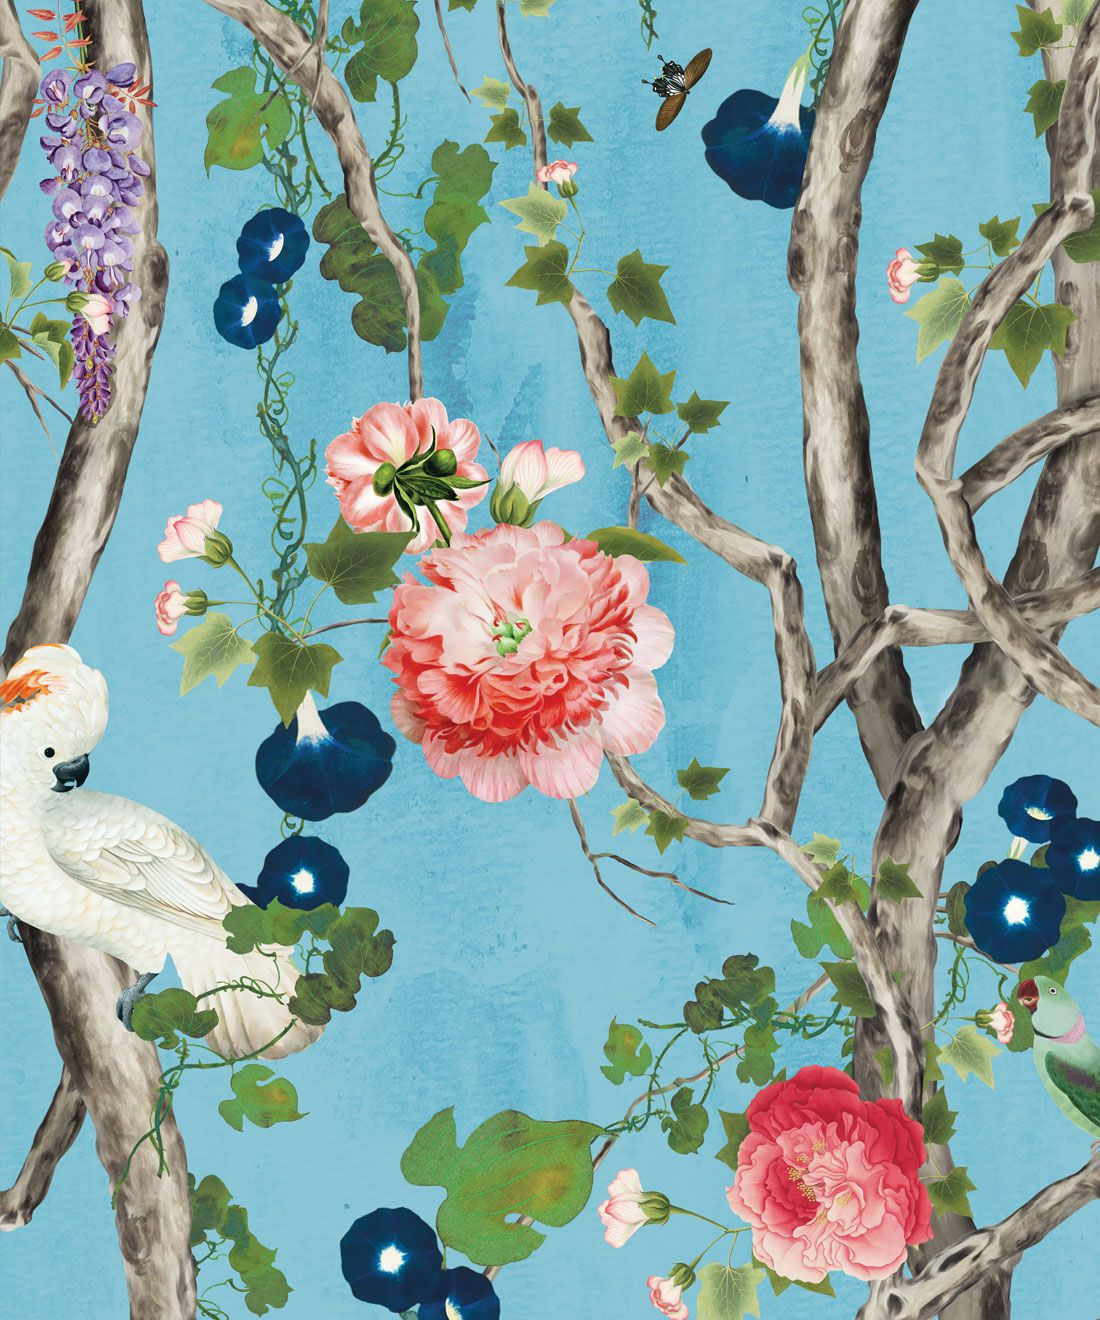 Empress Wallpaper • Romantic Wallpaper • Floral Wallpaper • Chinoiserie Wallpaper • Light Blue color wallpaper swatch • Sky